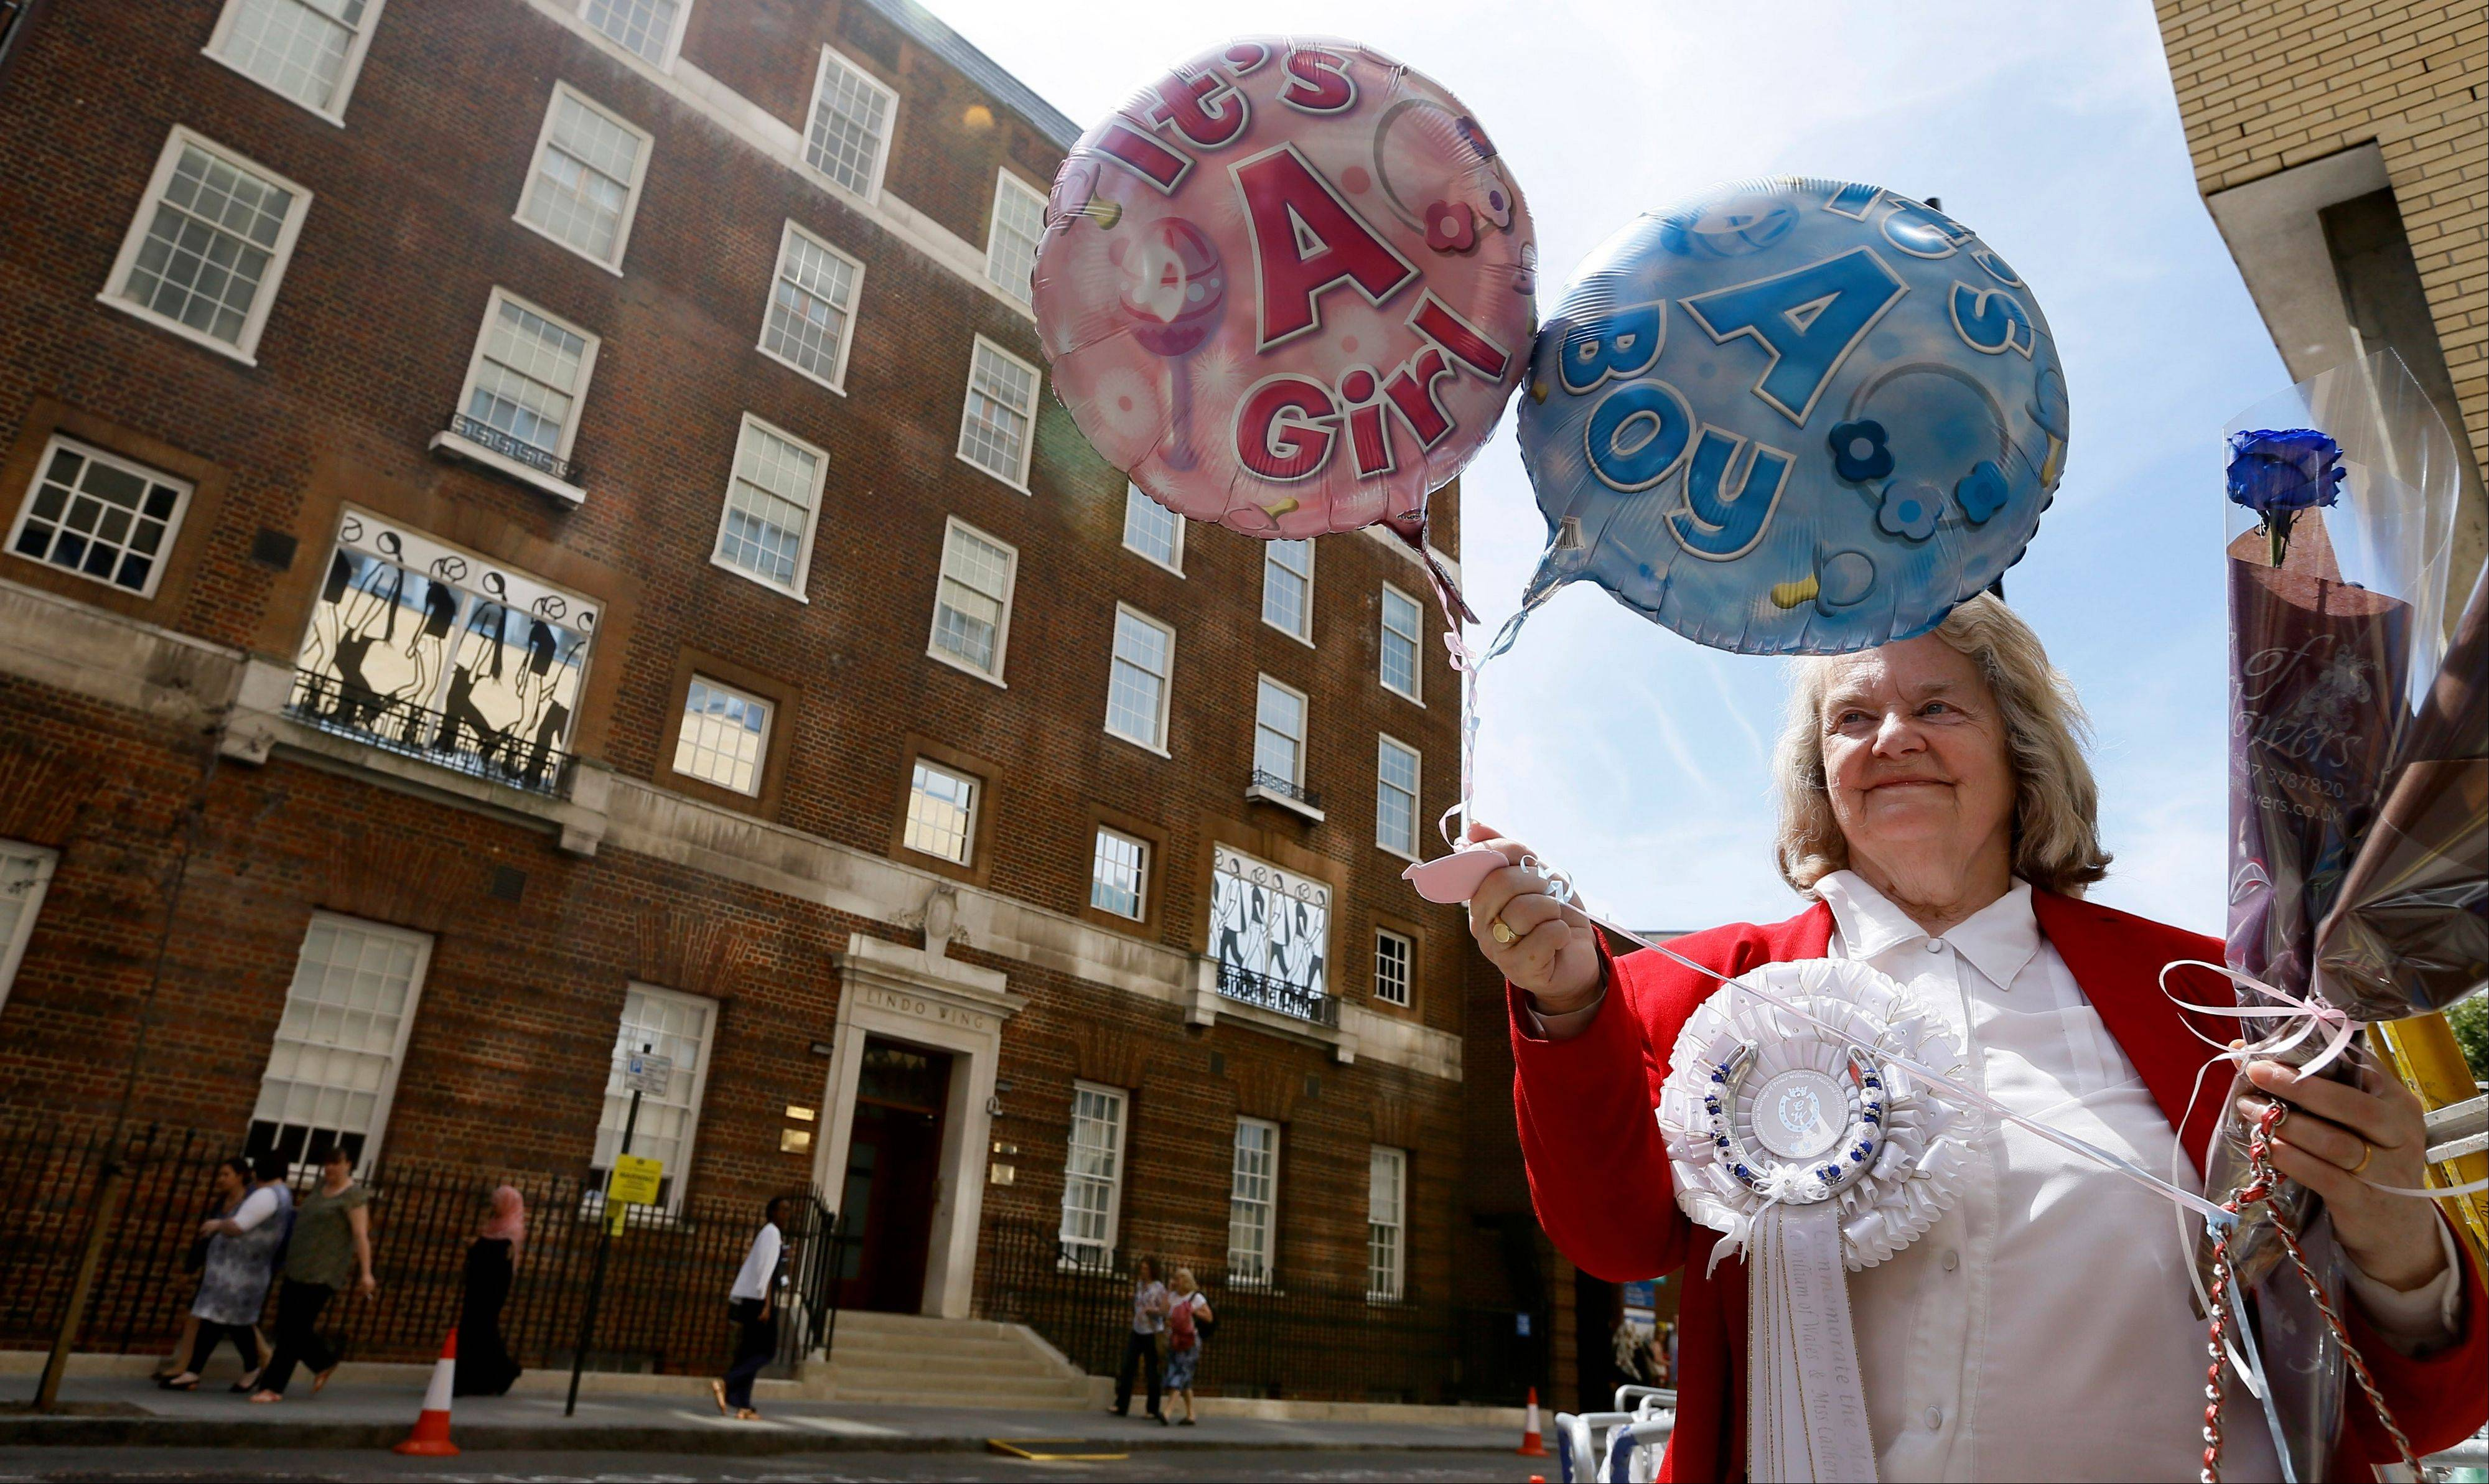 Royal supporter Margaret Tyler displays balloons for the media in front of the Lindo Wing at St Mary�s Hospital in London. Britain�s Kate, the Duchess of Cambridge plans to give birth to her first child who will be third-in-line to the throne at the hospital in mid-July.